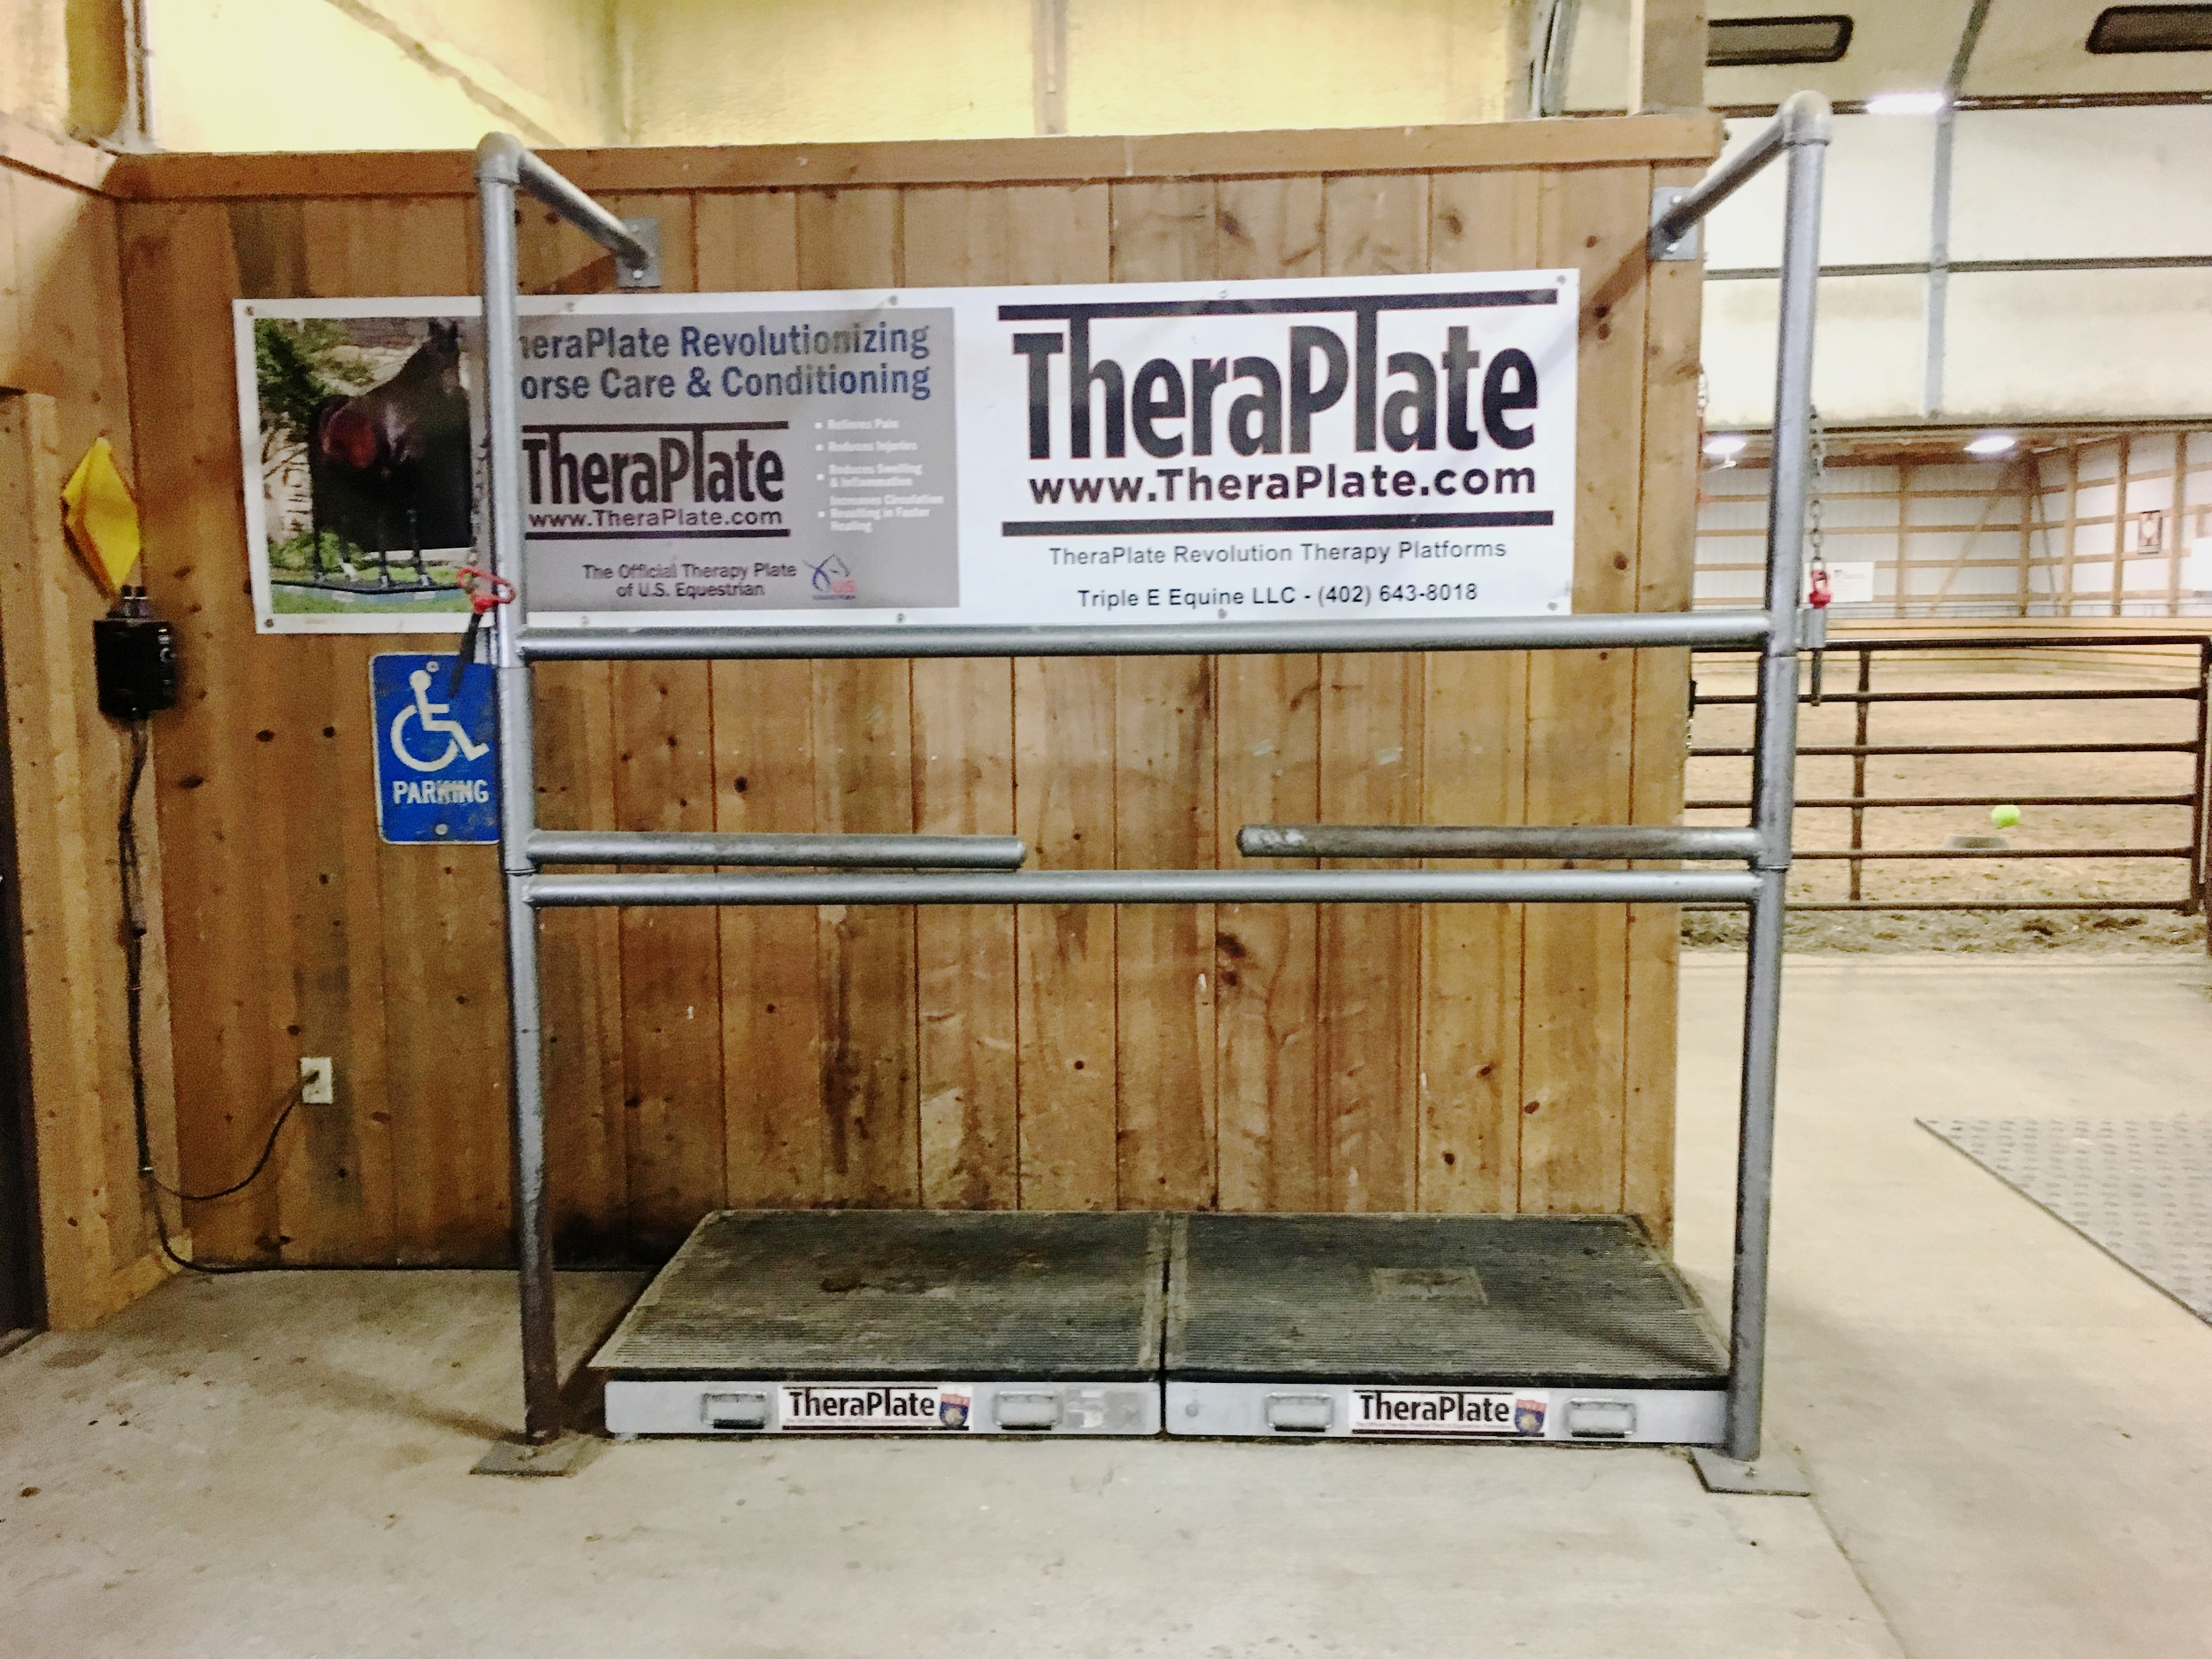 Now offering TheraPlate Sessions! - Spoil your horse and let them relax after a long trip or utilize some of the TheraPlate's treatment suggestions that fit your horse's needs.Price: $1 per minute. Most sessions/treatments are only 20 minutes long!Brief overview of the TheraPlate's benefits!Reducing Stress, Relieving Pain ,Reducing Swelling & Inflammation ,Increasing Circulation, Improving Joint Health and Function, Speeding Healing Time,Improving Balance, Increasing Bone Strength & Density, Increasing Digital Cushion Circulation… and so much more!